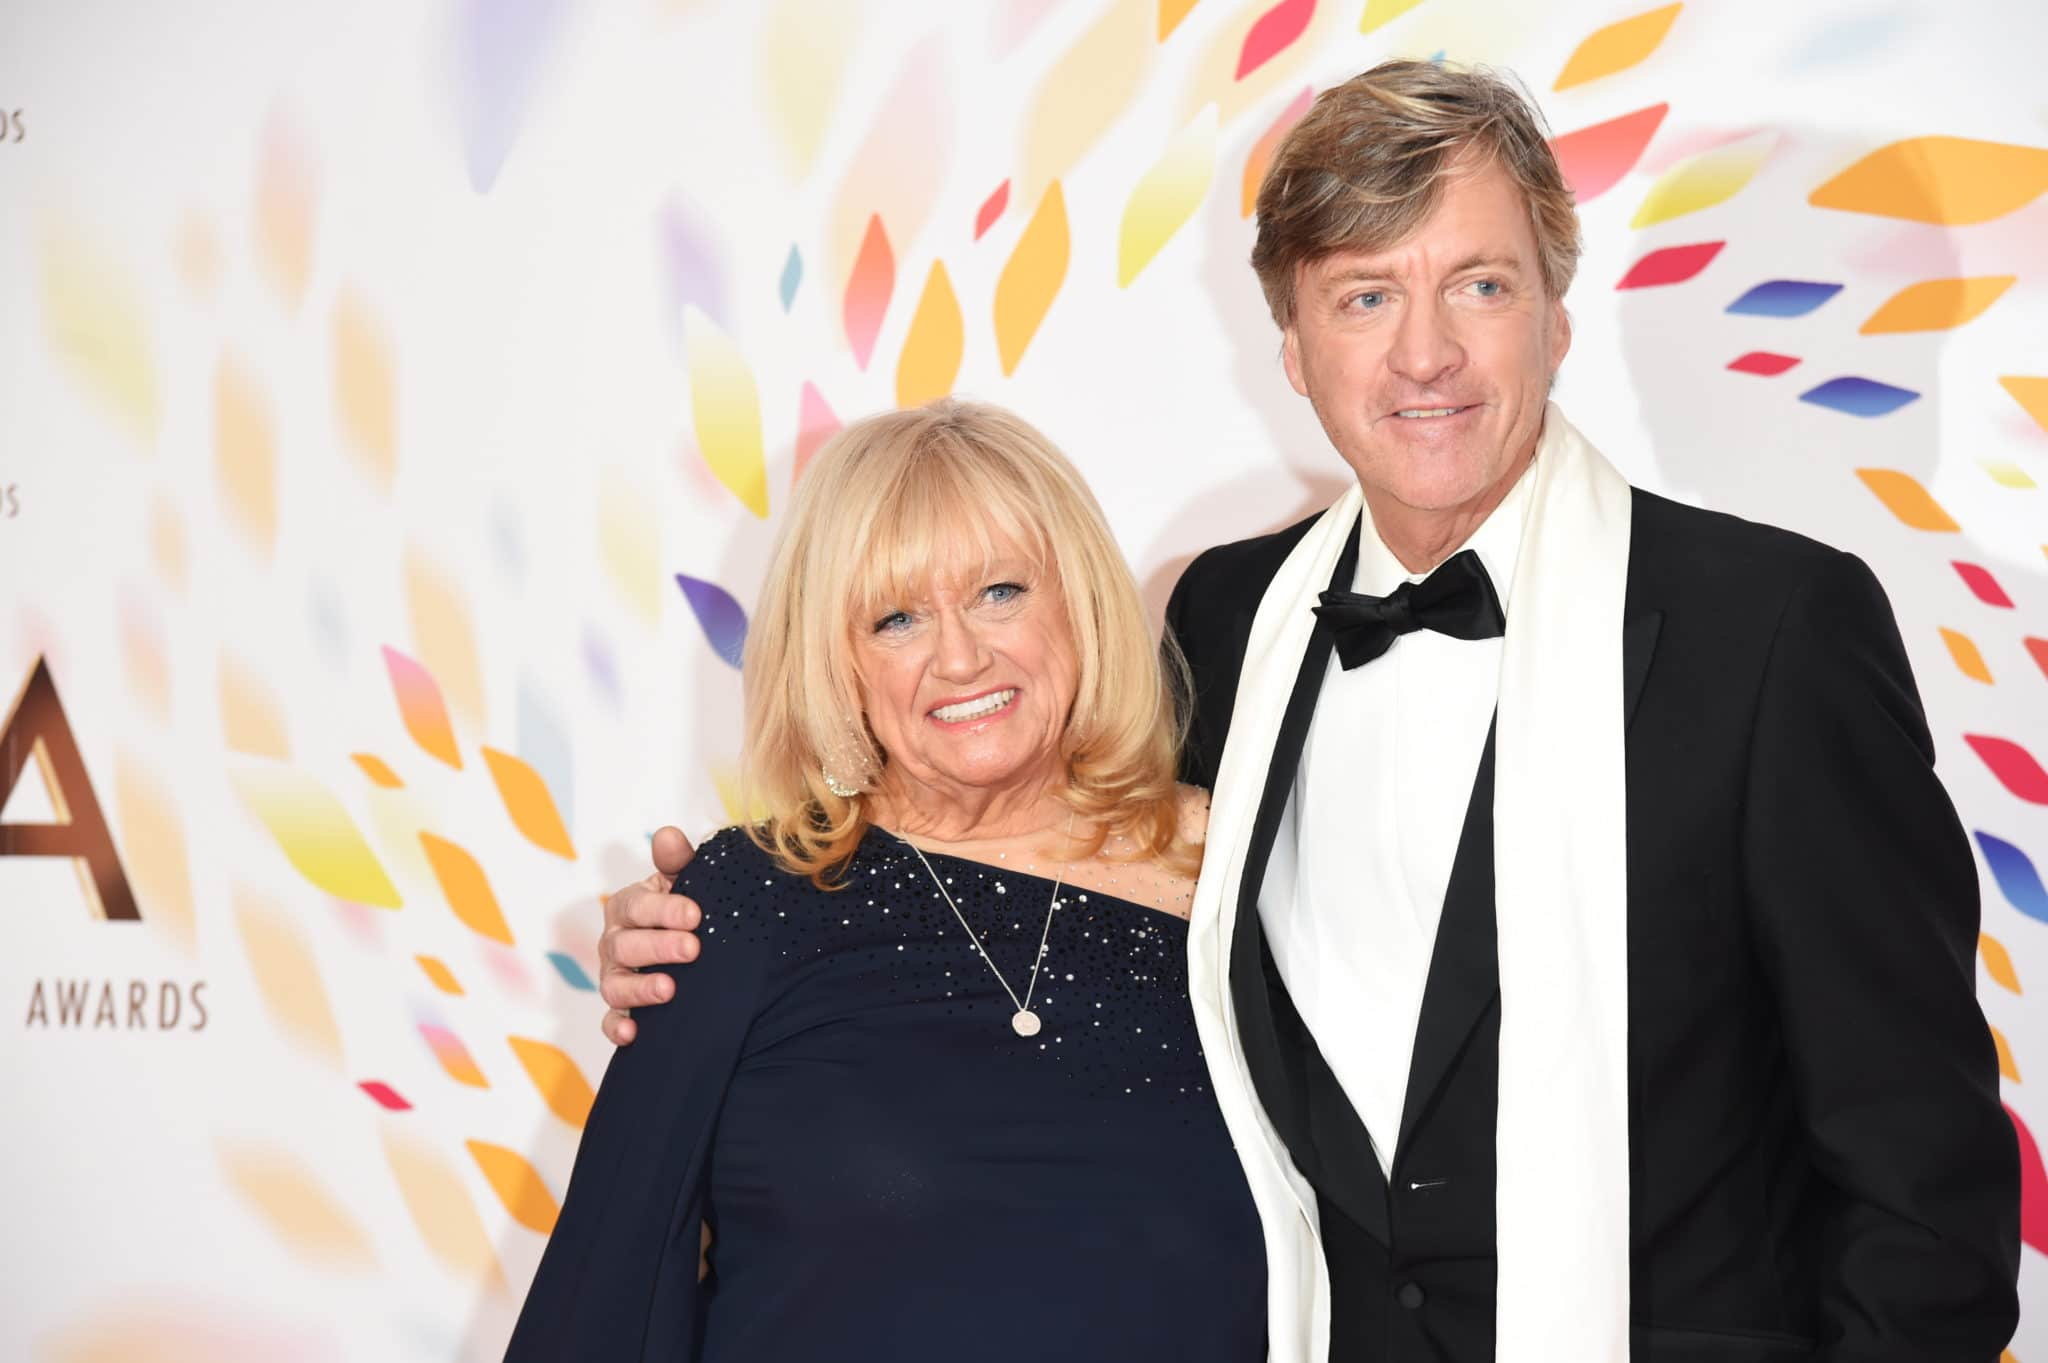 Judy Finnigan and Richard Madeley at the National Television Awards 2020